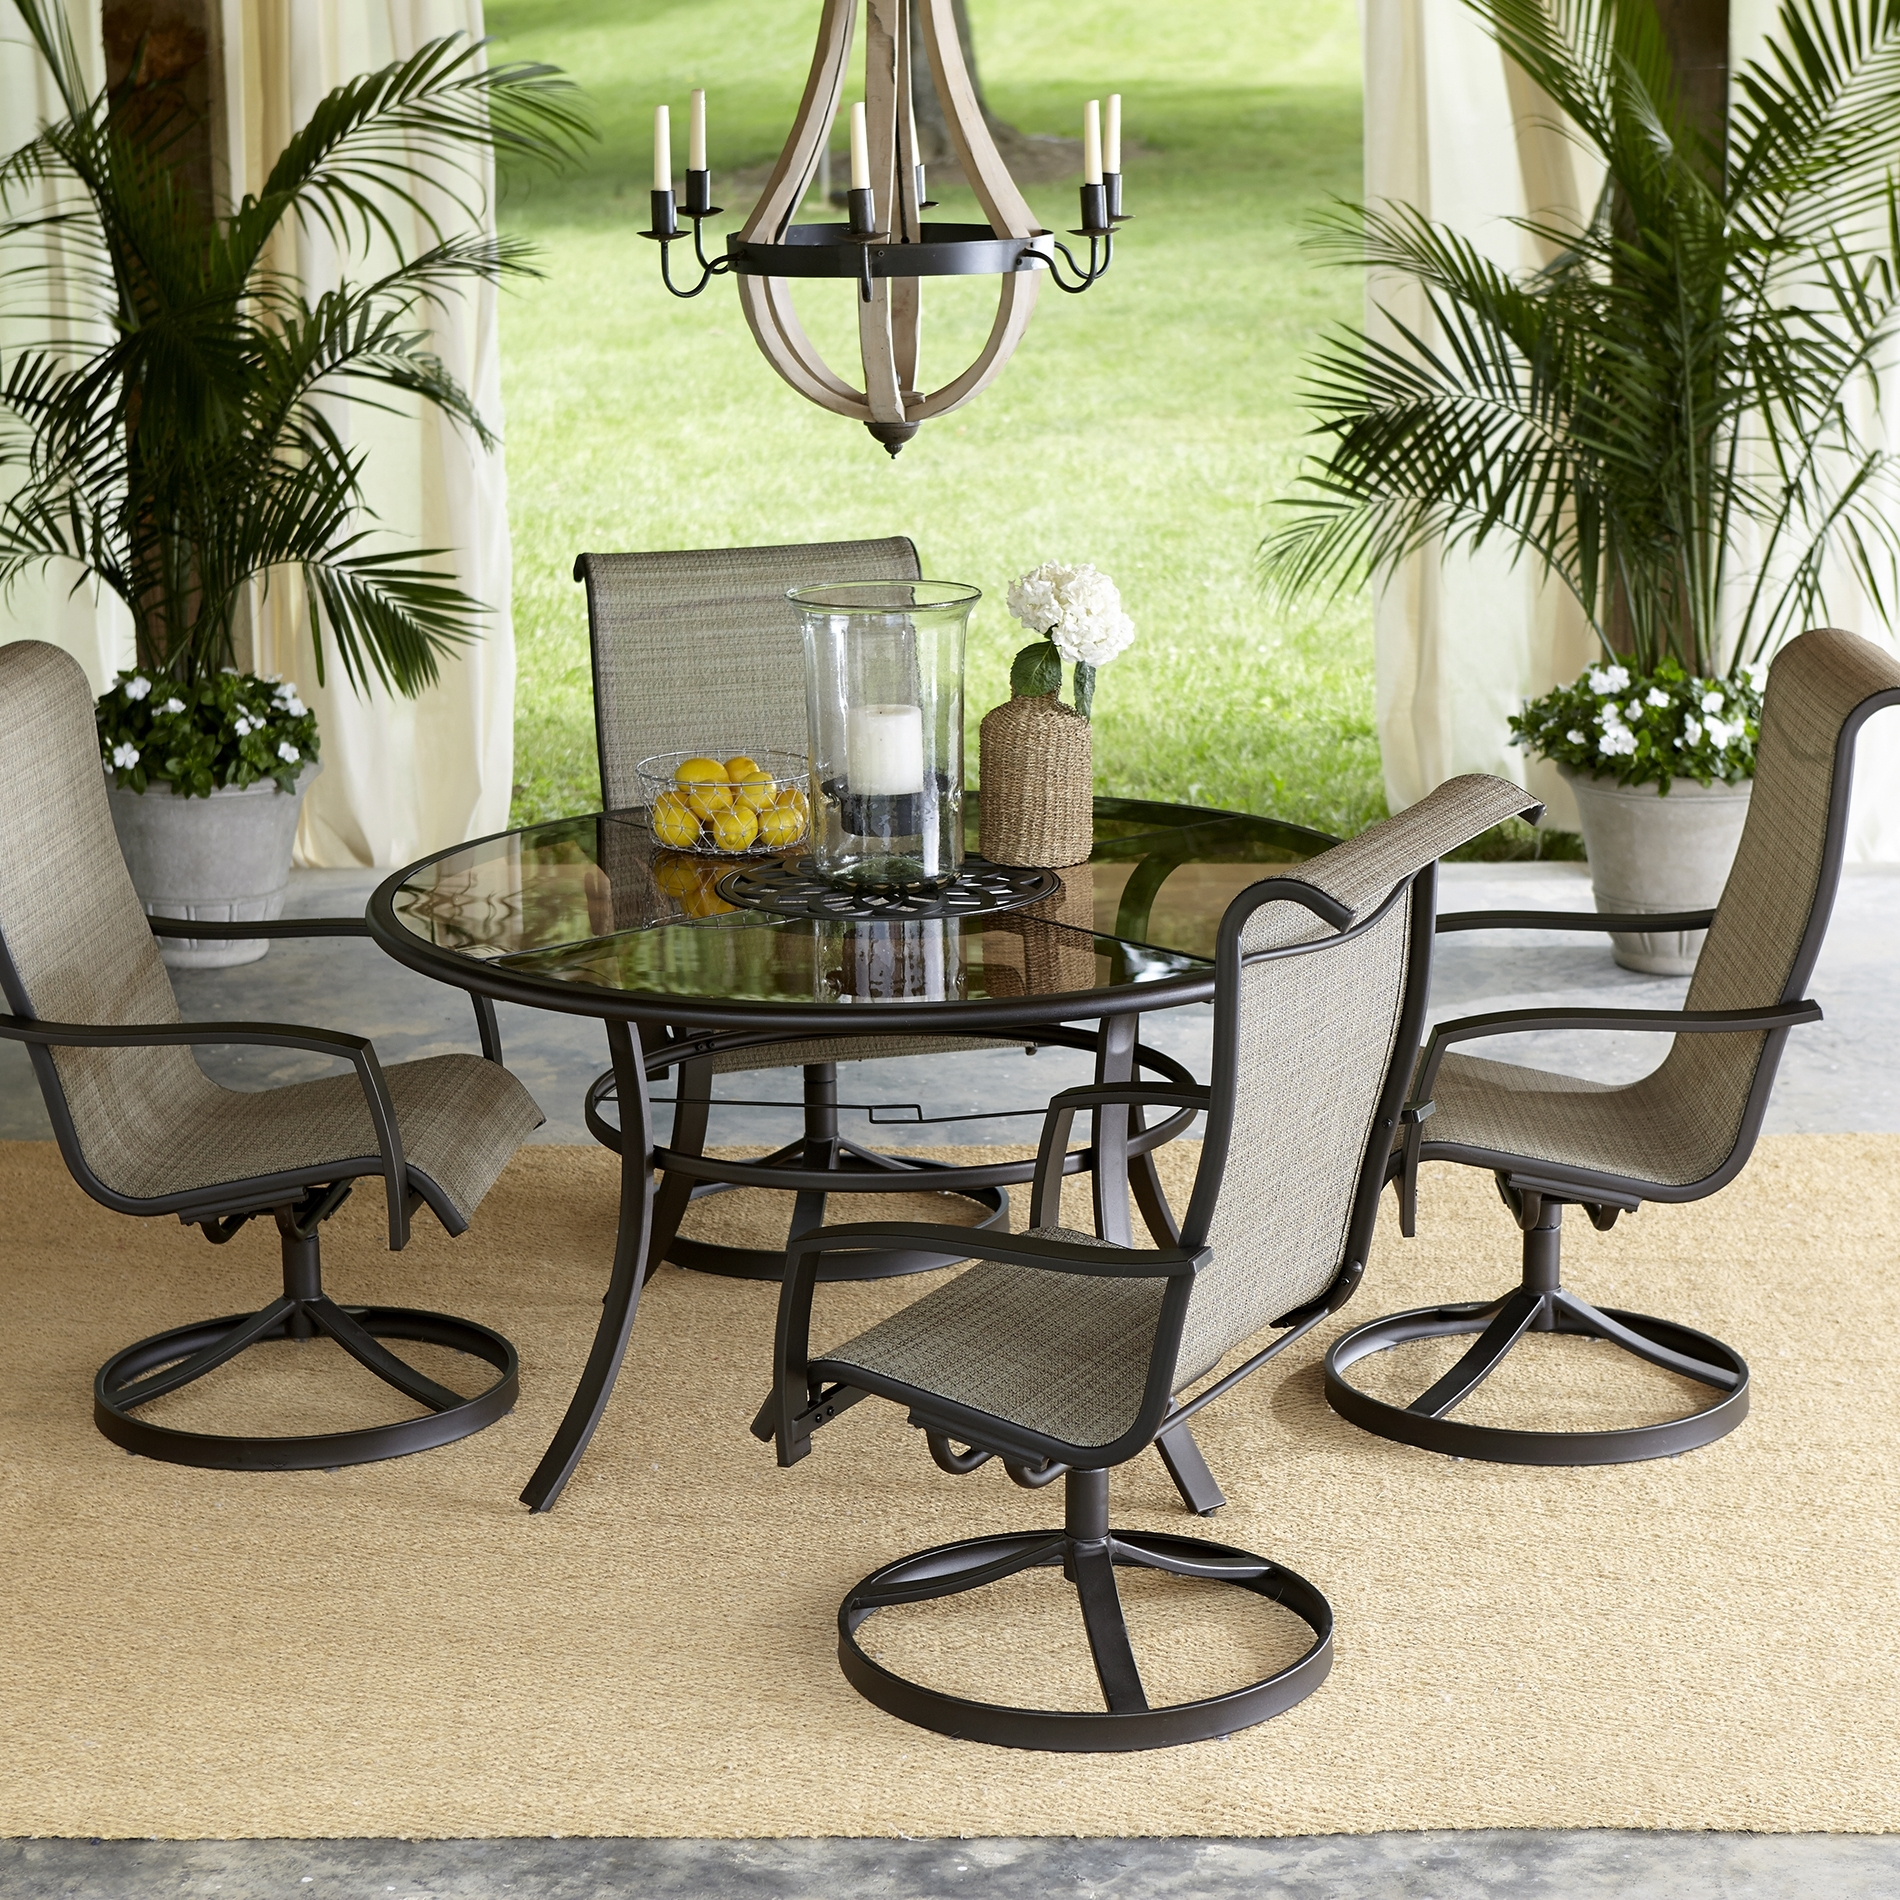 Latest Patio Dining Sets Round Table Furniture Alluring Beautiful Tables Intended For Patio Conversation Dining Sets (View 9 of 20)